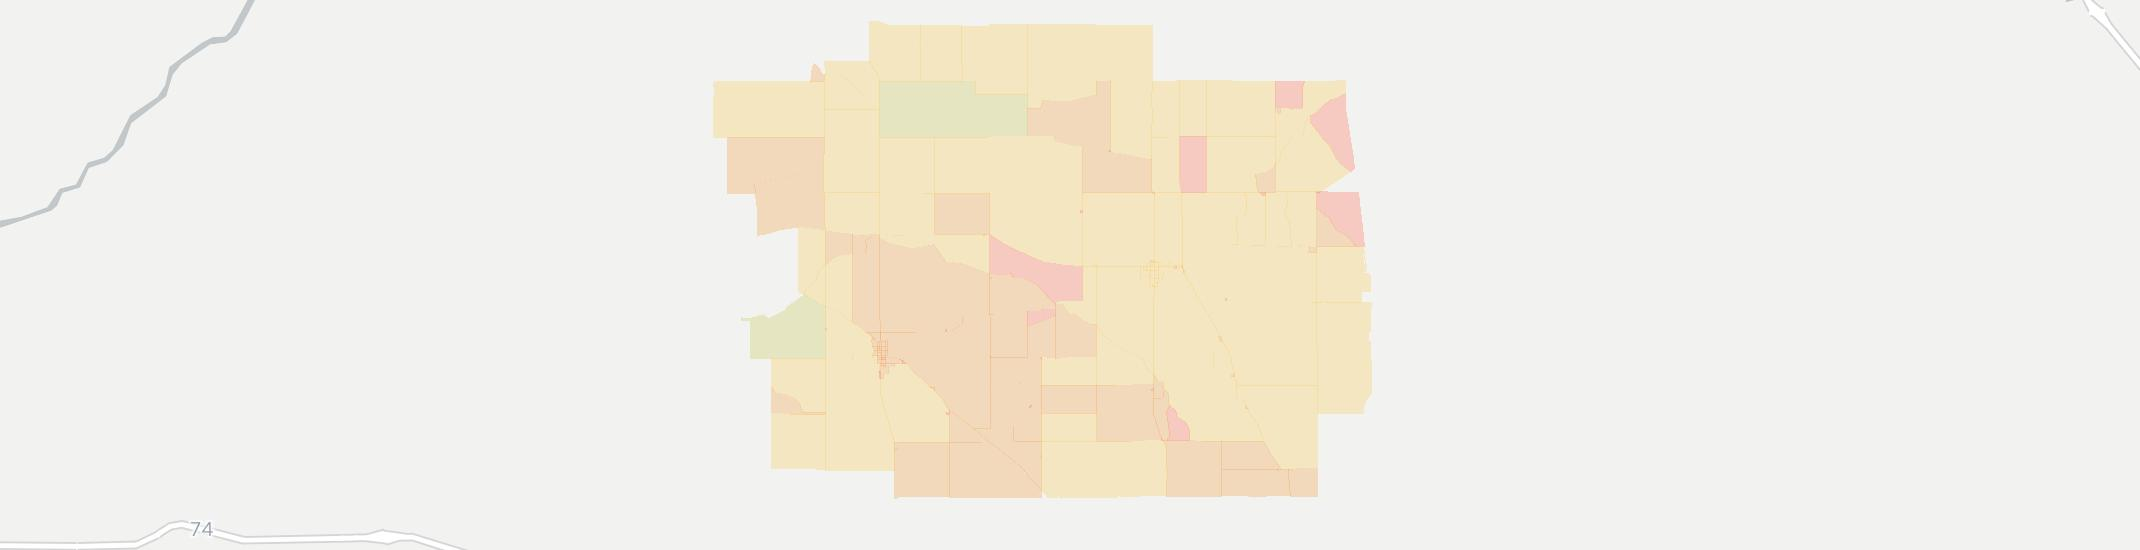 New Richmond Internet Competition Map. Click for interactive map.